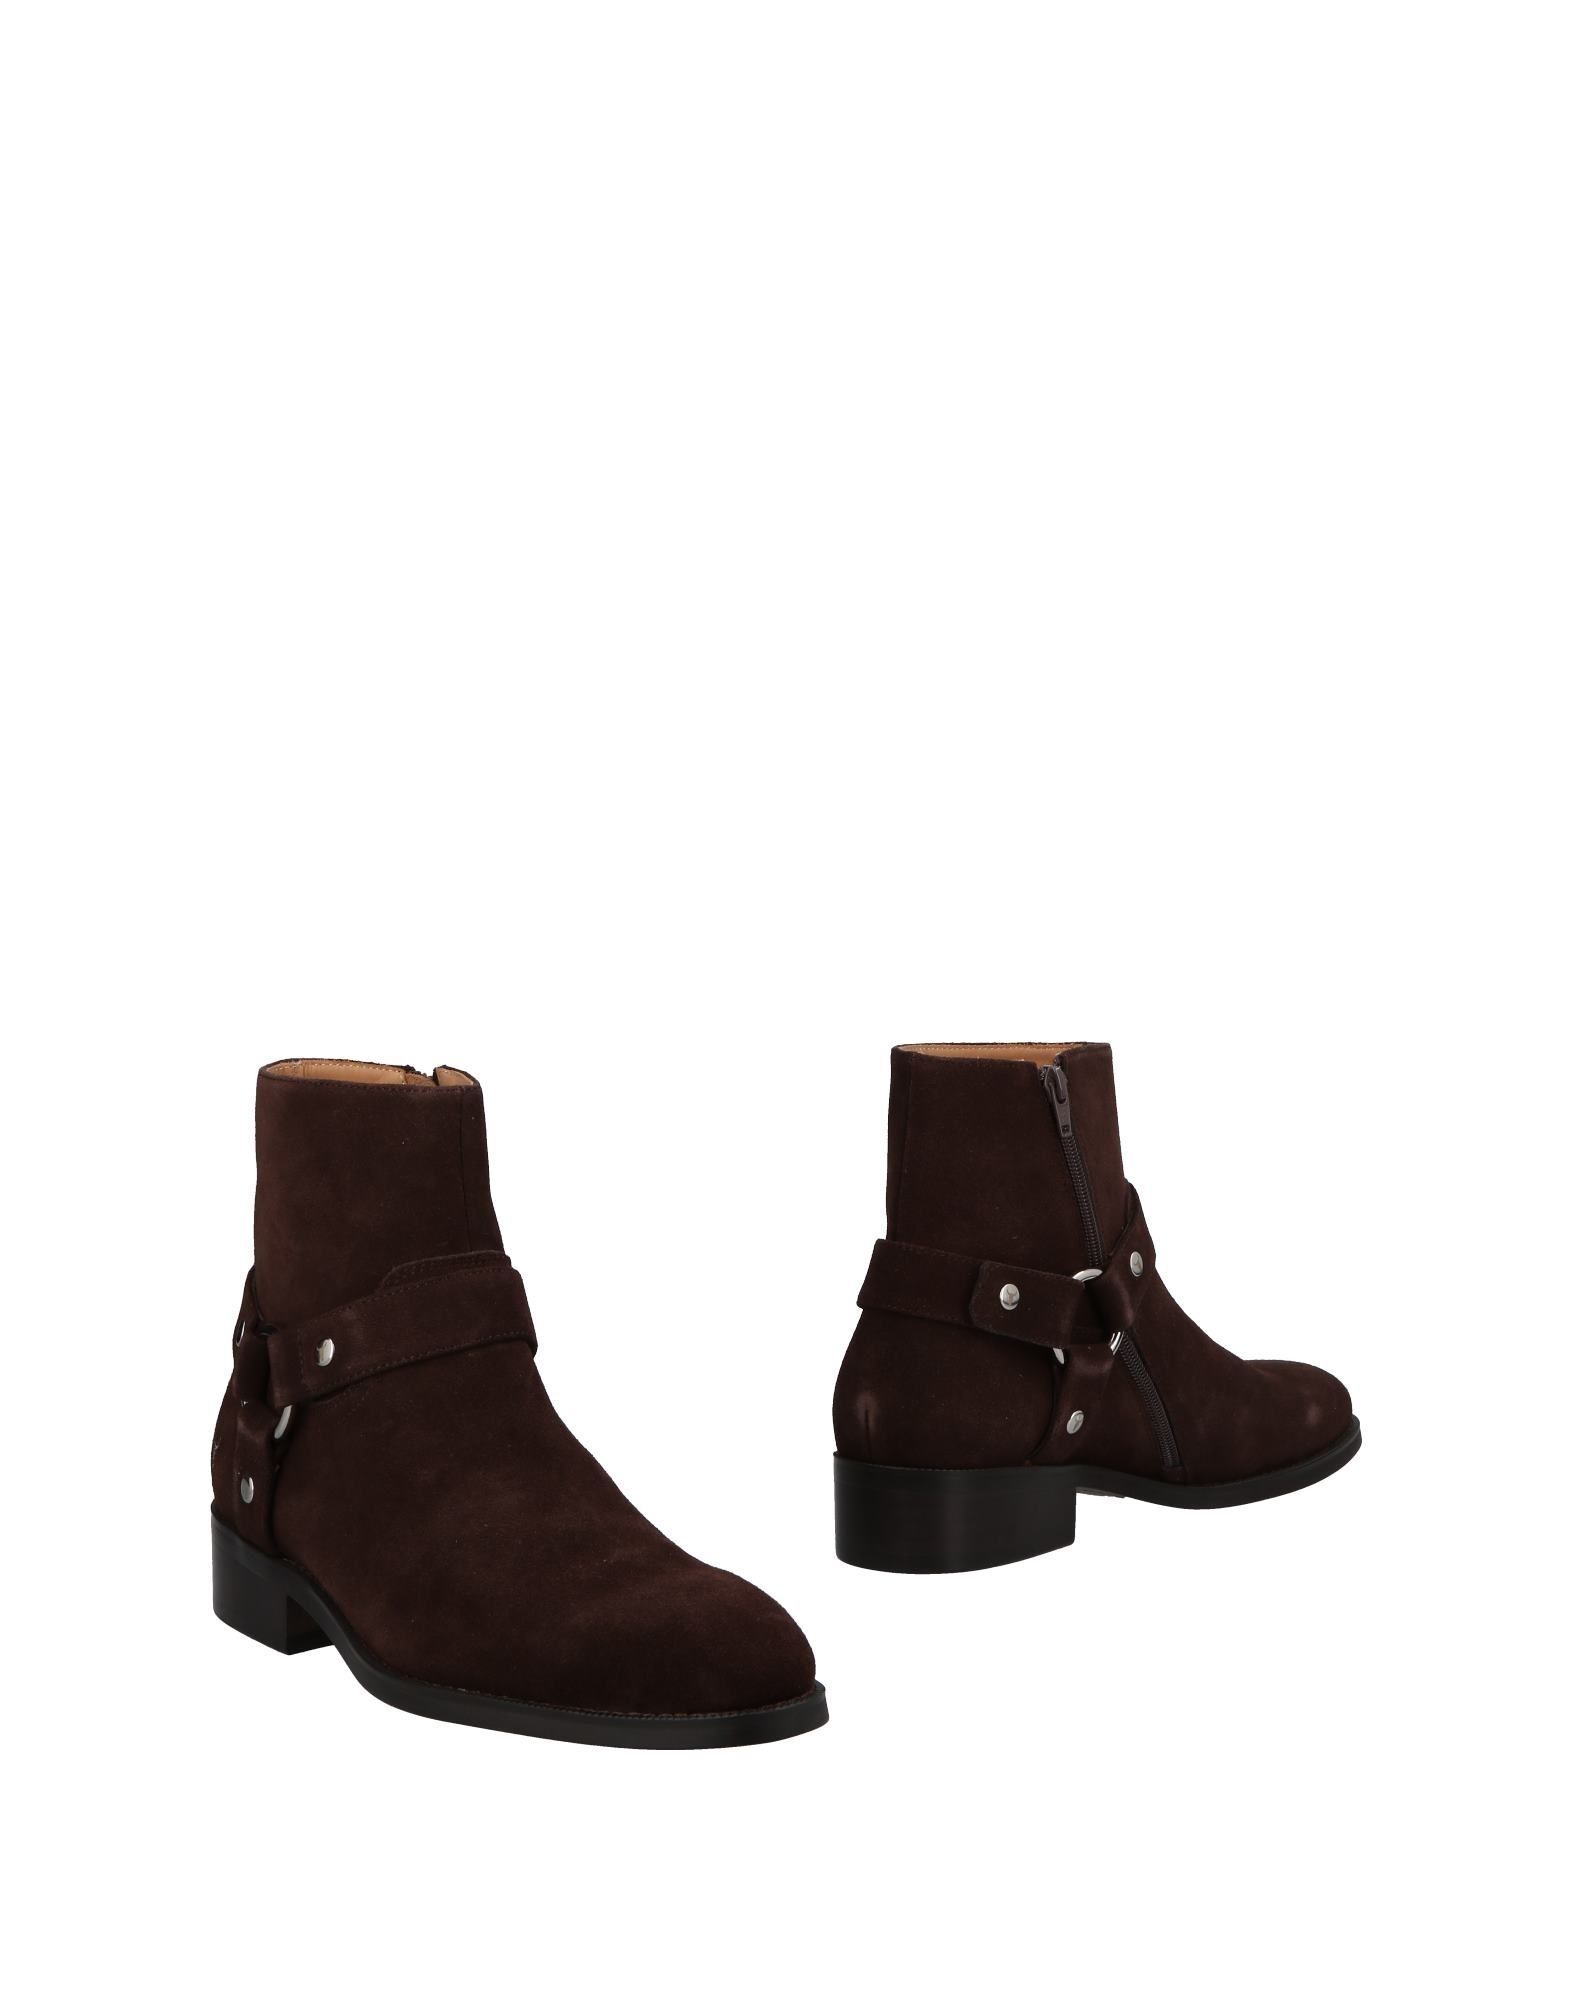 WINDSOR SMITH Ankle Boots in Dark Brown